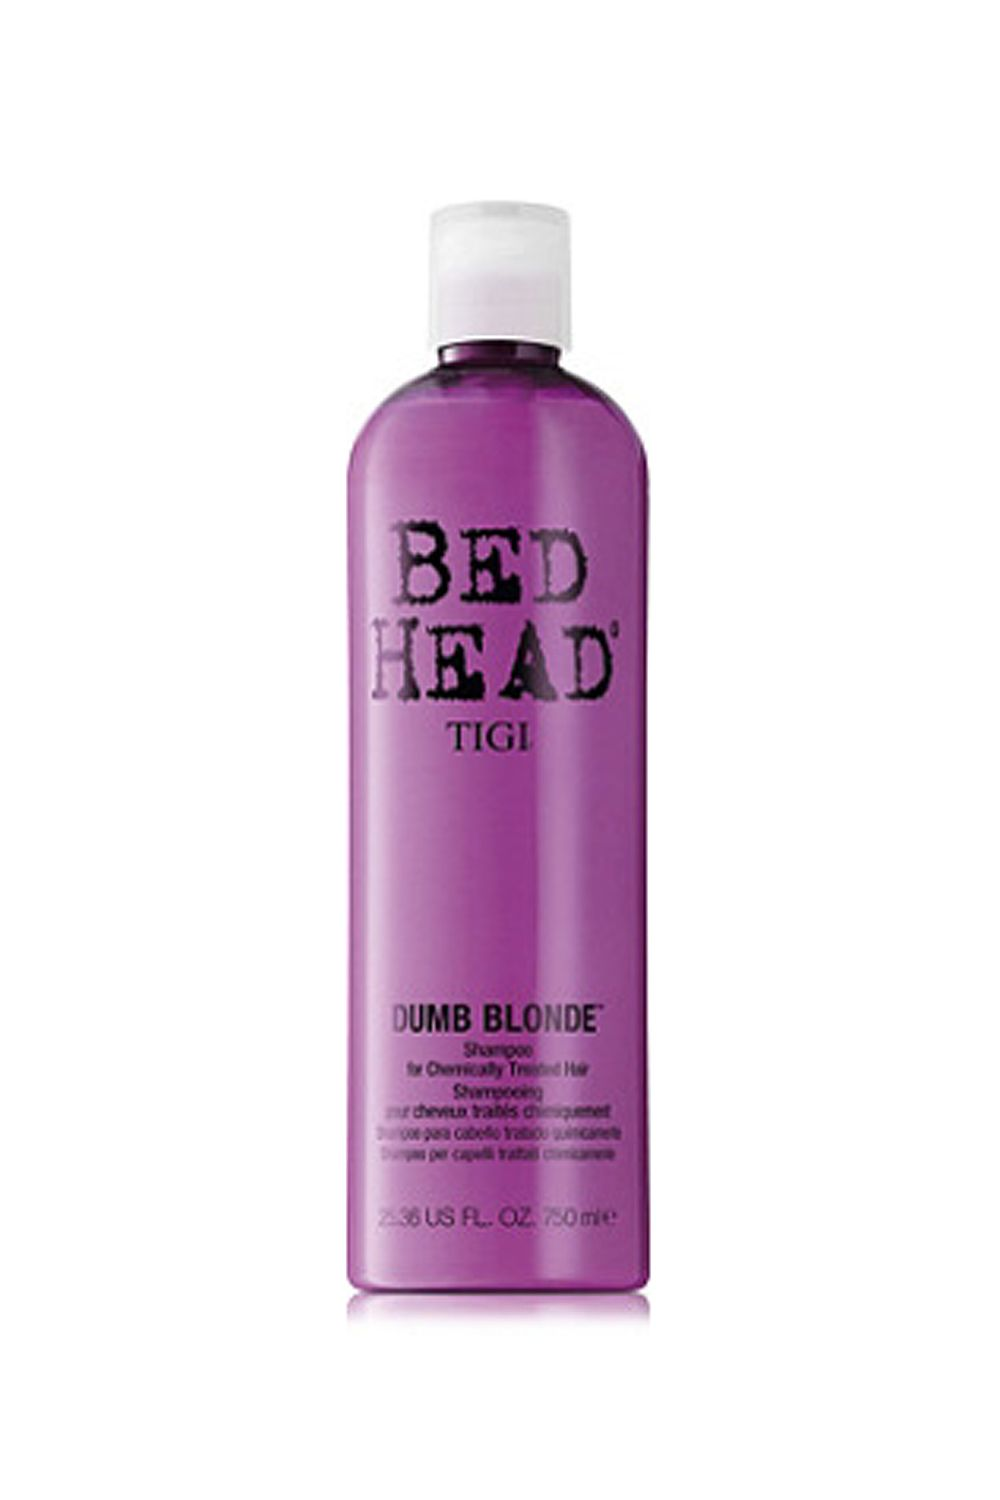 "<p>Vibrancy and softness in one. What else even is there?&nbsp&#x3B;</p><p>TIGI Bed Head Dumb Blonde Shampoo, $29, <a href=""http://www.ulta.com/bed-head-dumb-blonde-shampoo?productId=xlsImpprod5870152"" target=""_blank"" data-tracking-id=""recirc-text-link"">ulta.com</a>.</p>"